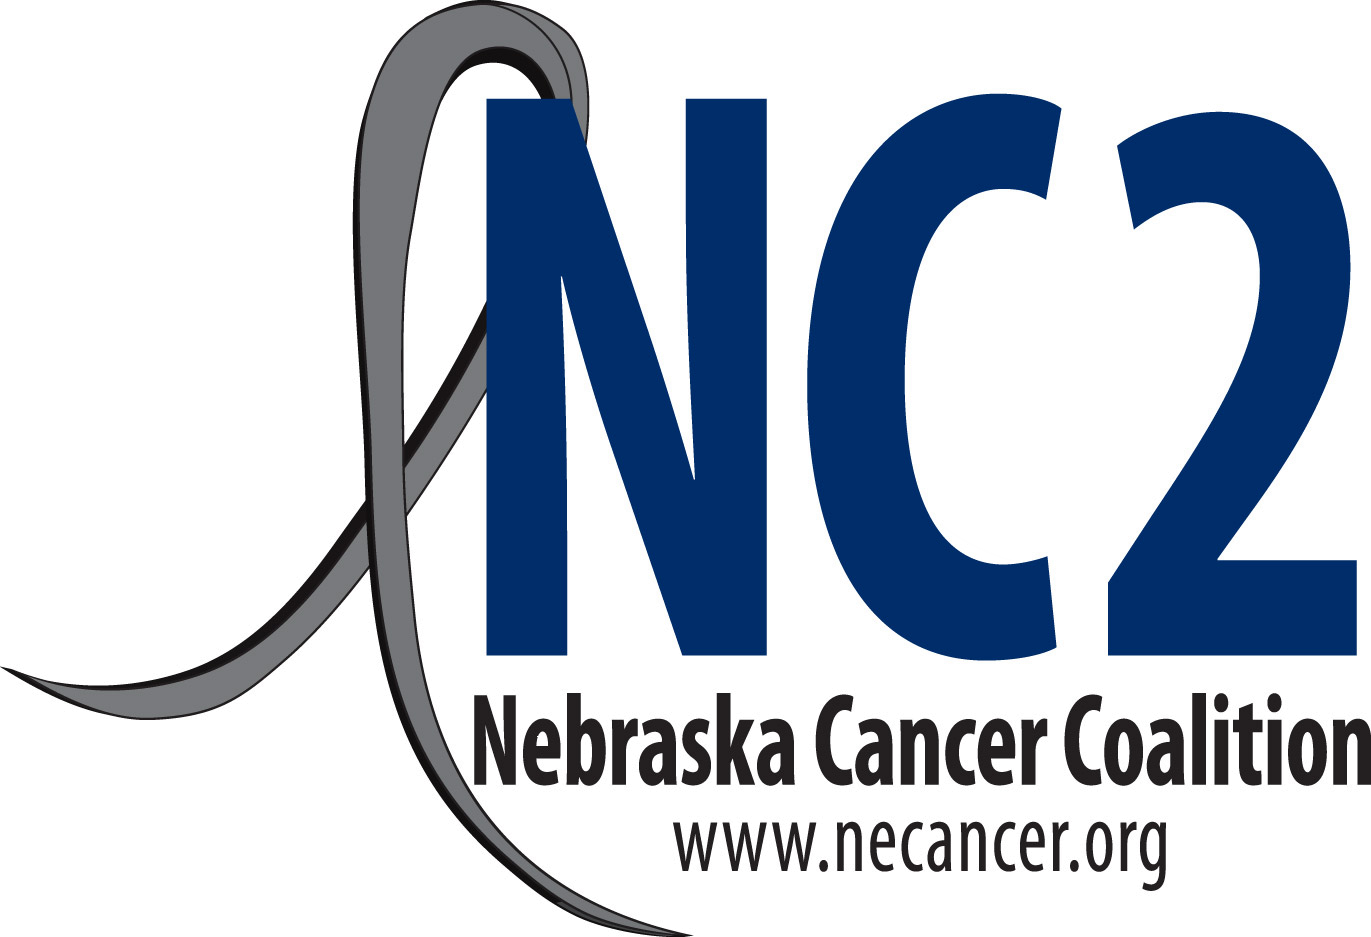 nebraska cancer coalition - NC2 is a statewide partnership of 350 individuals representing 200 public and private organizations. Our partners are working together to prevent and control cancer and it's economic and psychosocial effects on our families, friends and communities. NC2 works toward implementing the goals and objectives outlined in the Nebraska Cancer Plan.